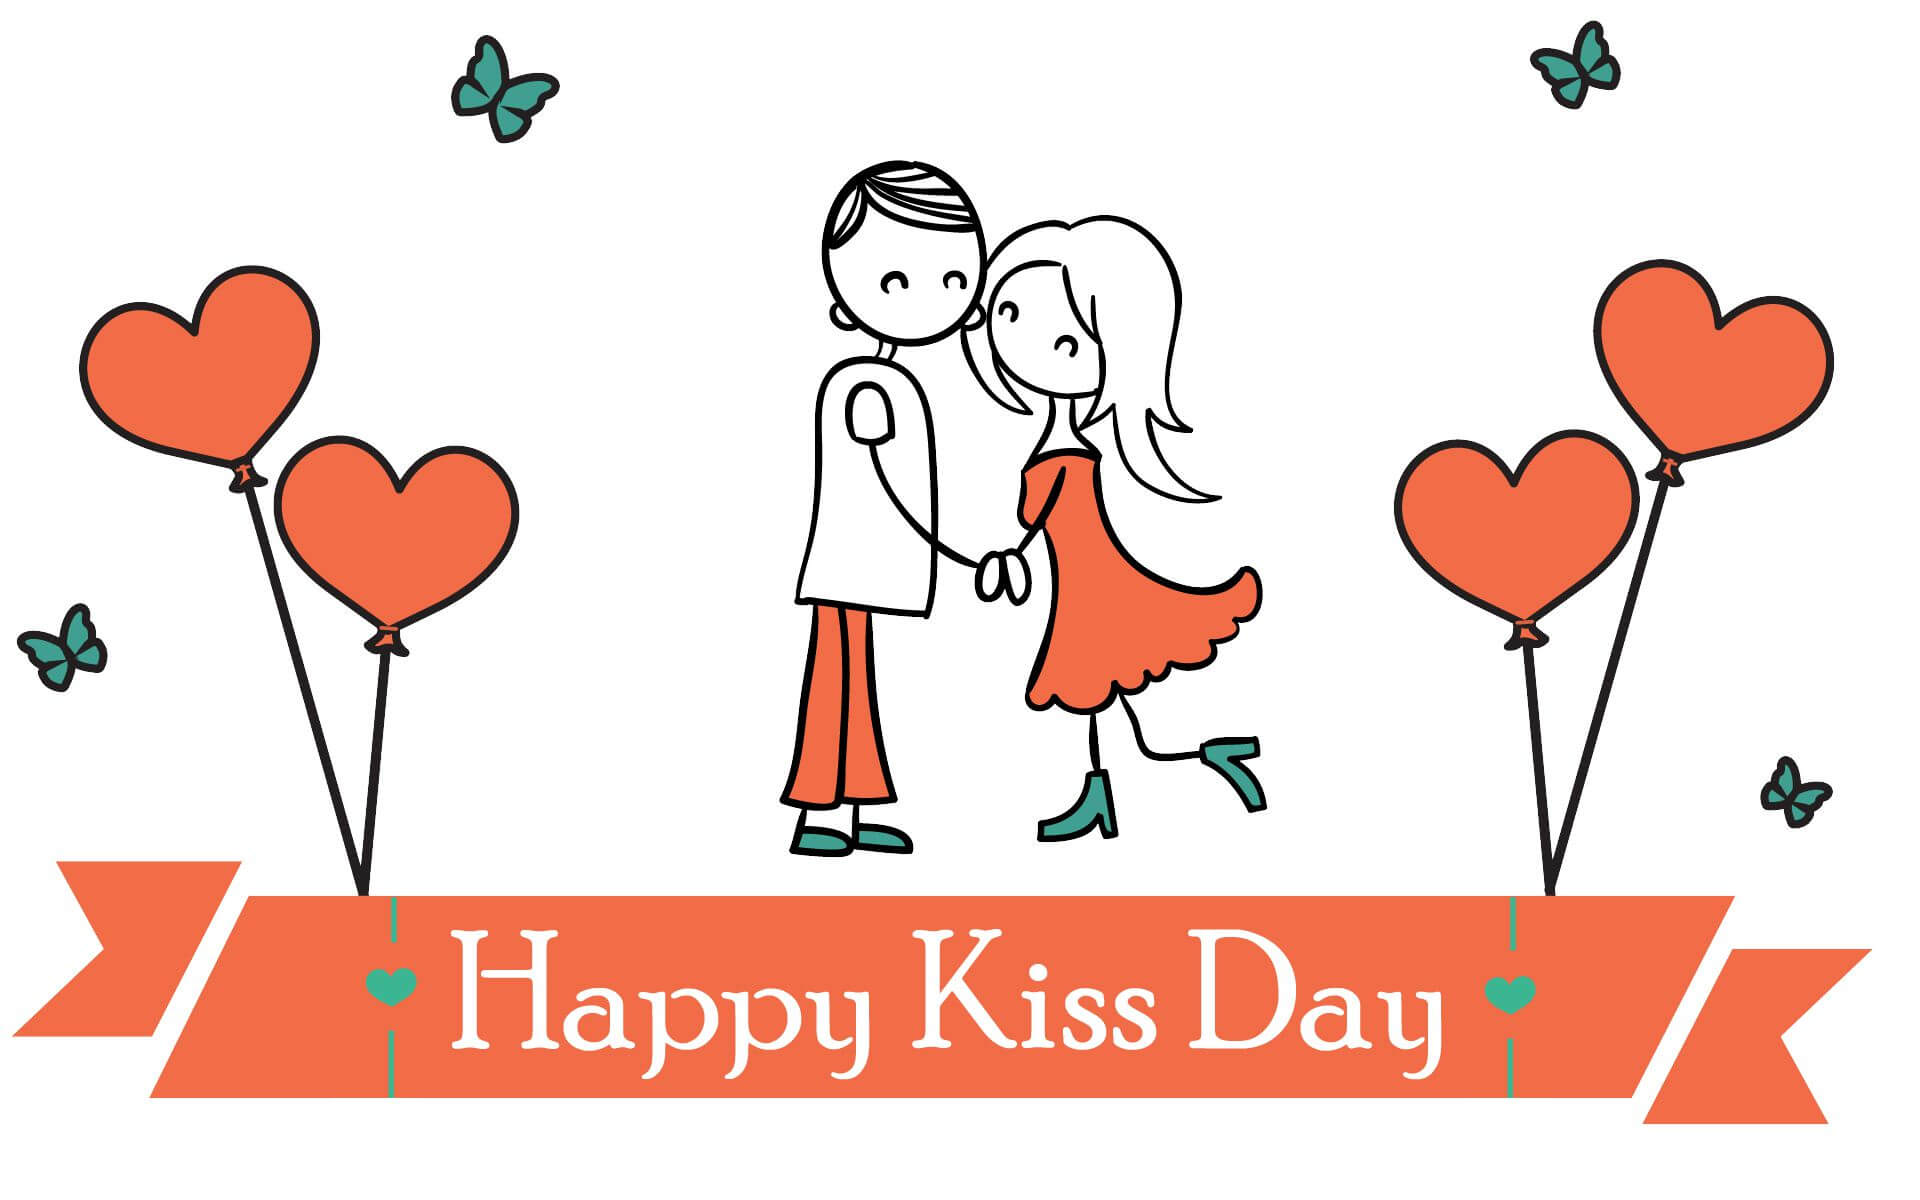 happy kiss day wishes love valentine february 12th cartoon image hd wallpaper